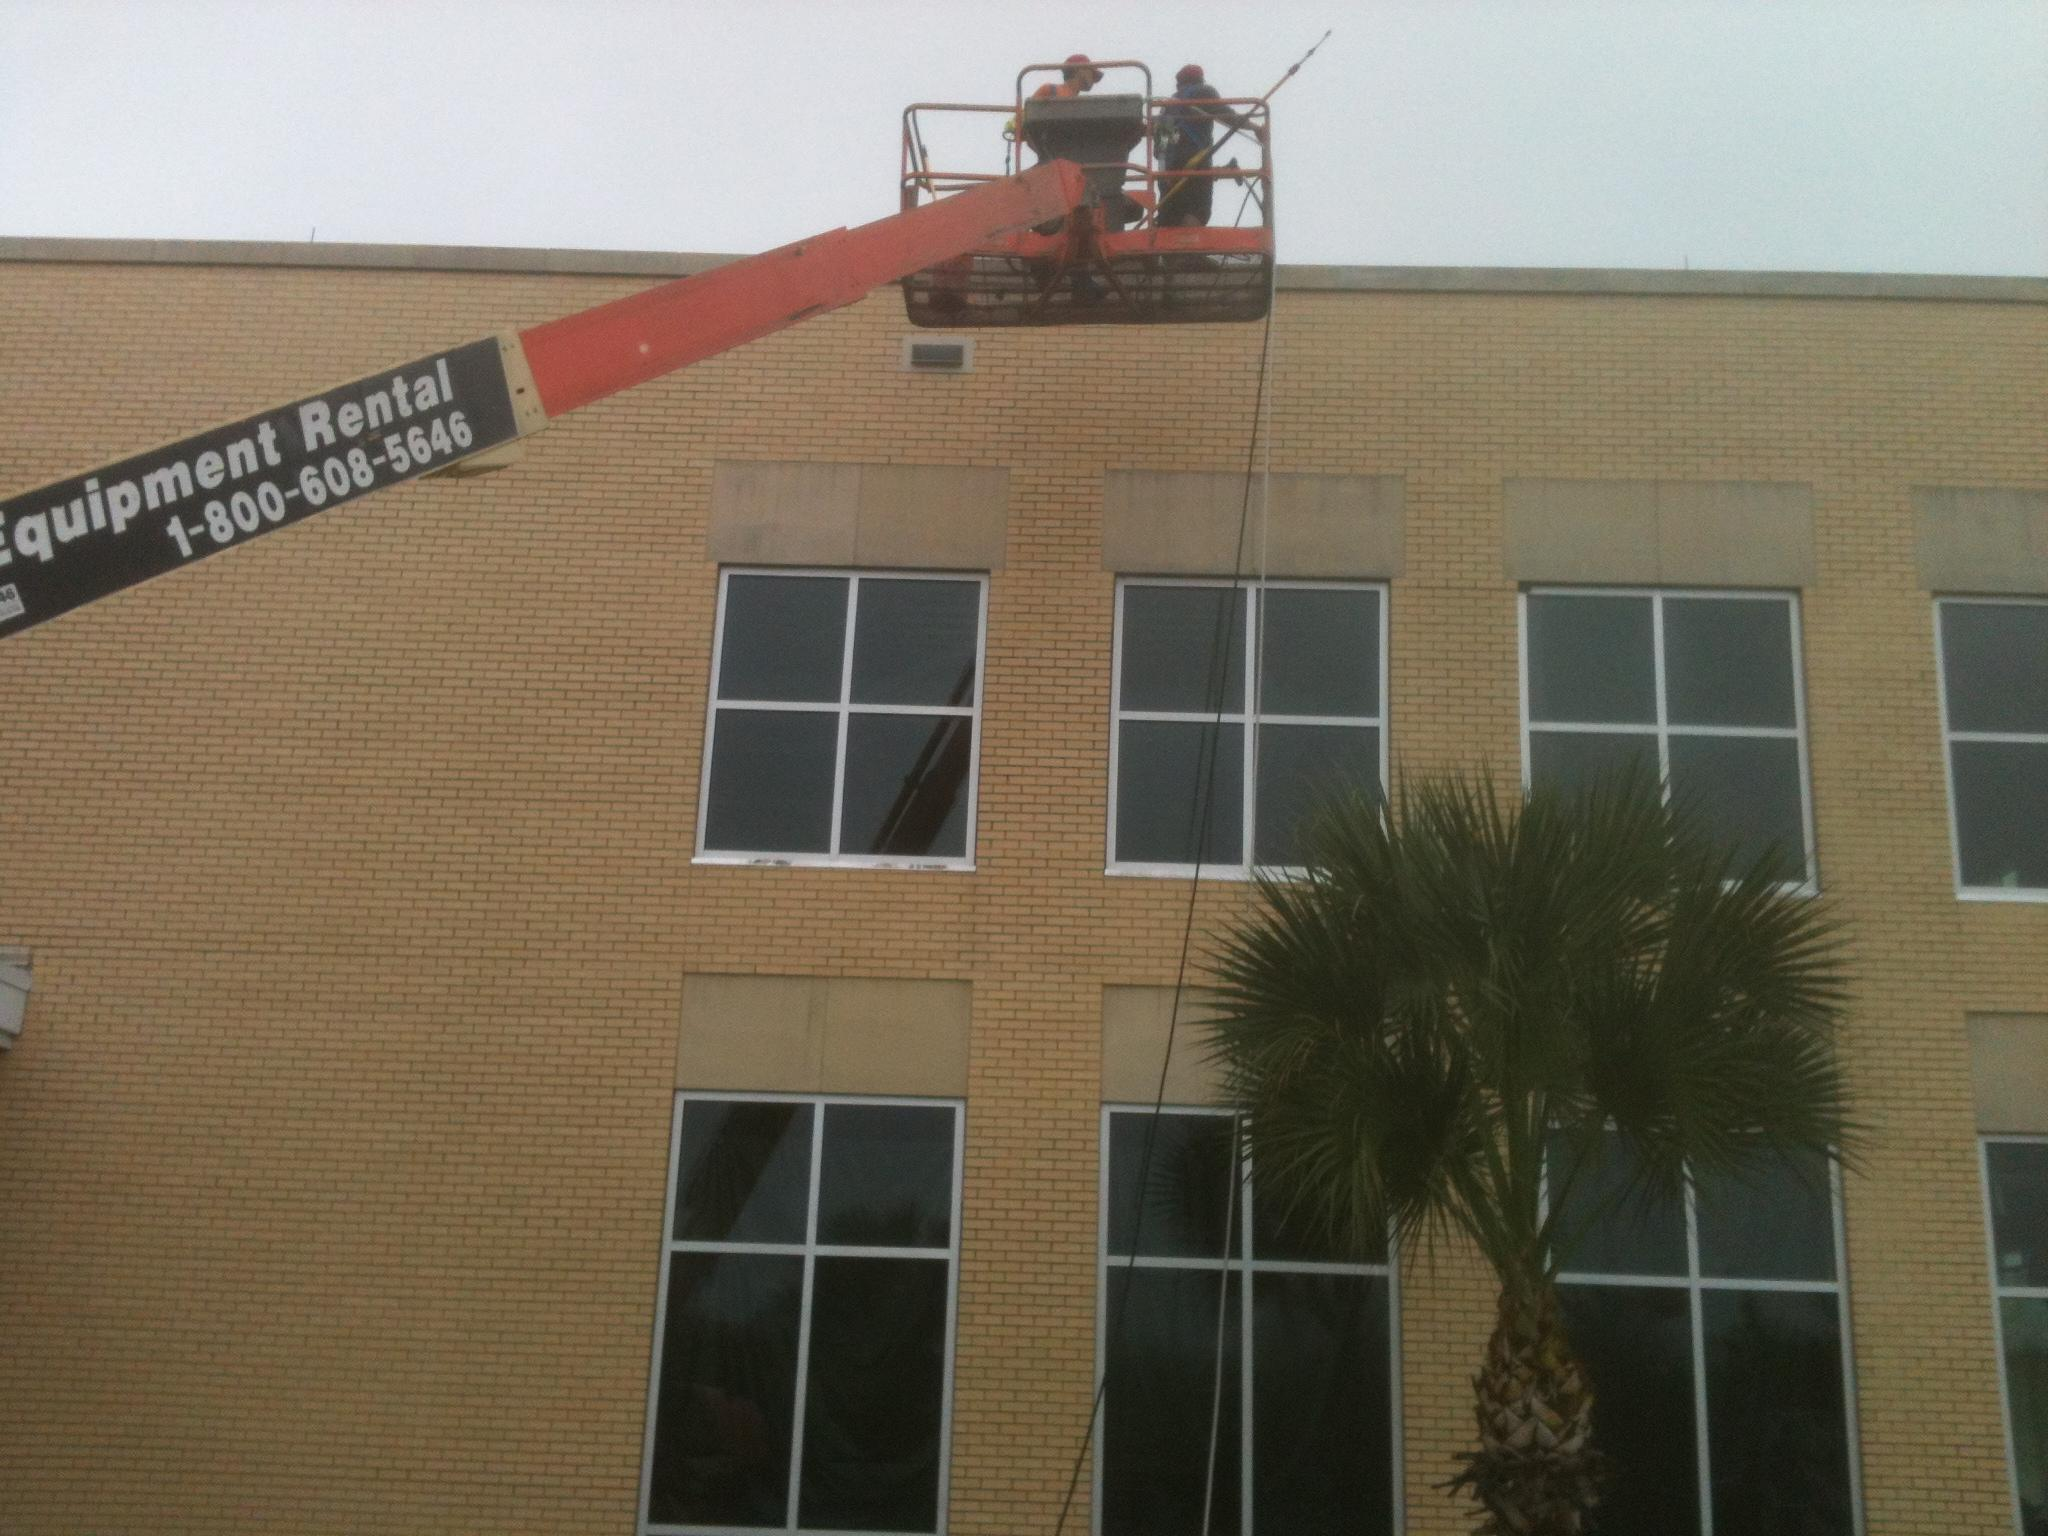 Green Cleaning Services LLC image 31